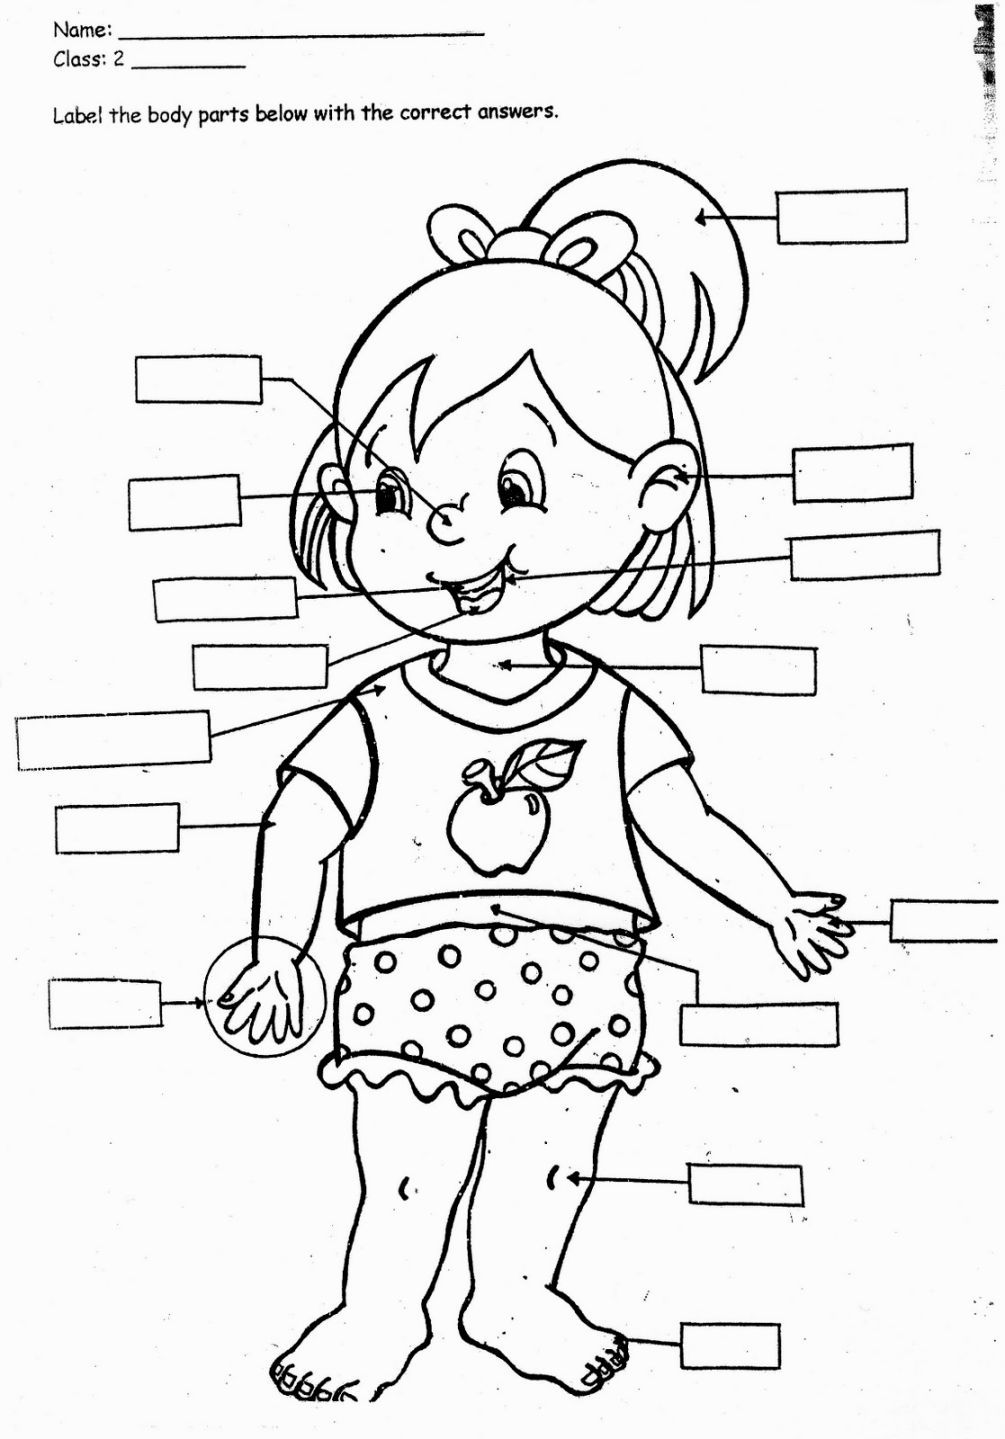 preschool body parts coloring preschool body parts coloring parts body preschool coloring